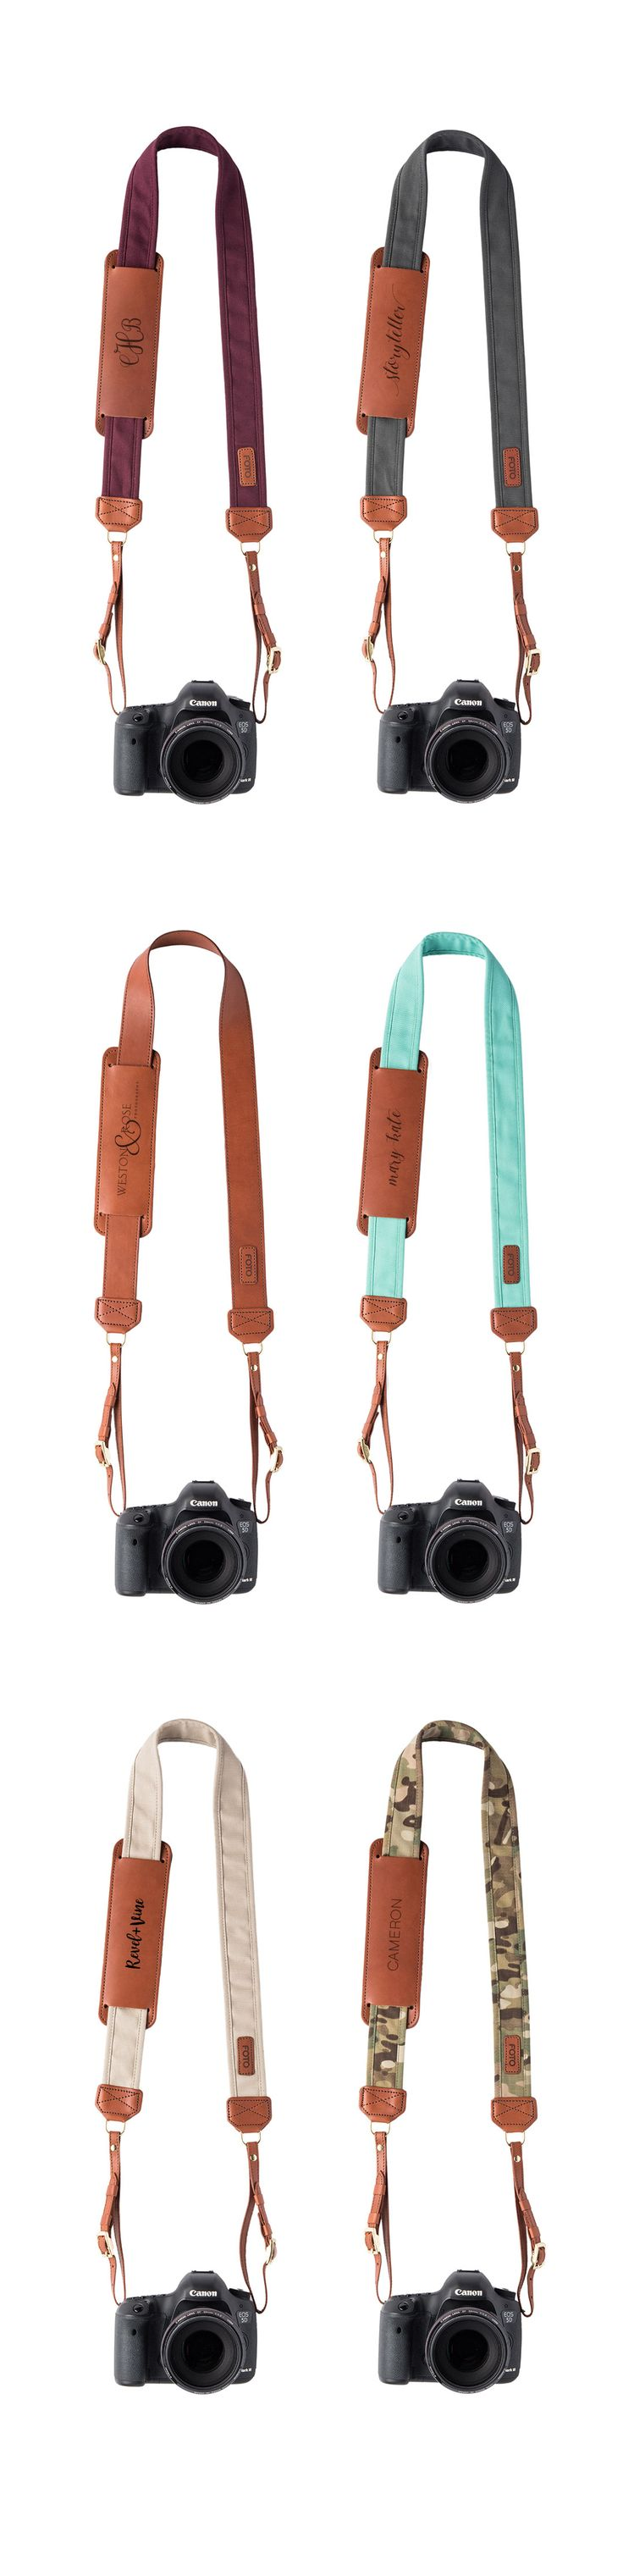 Fotostrap Collection - Genuine Leather, USA Made, Personalize with Monogram or logo